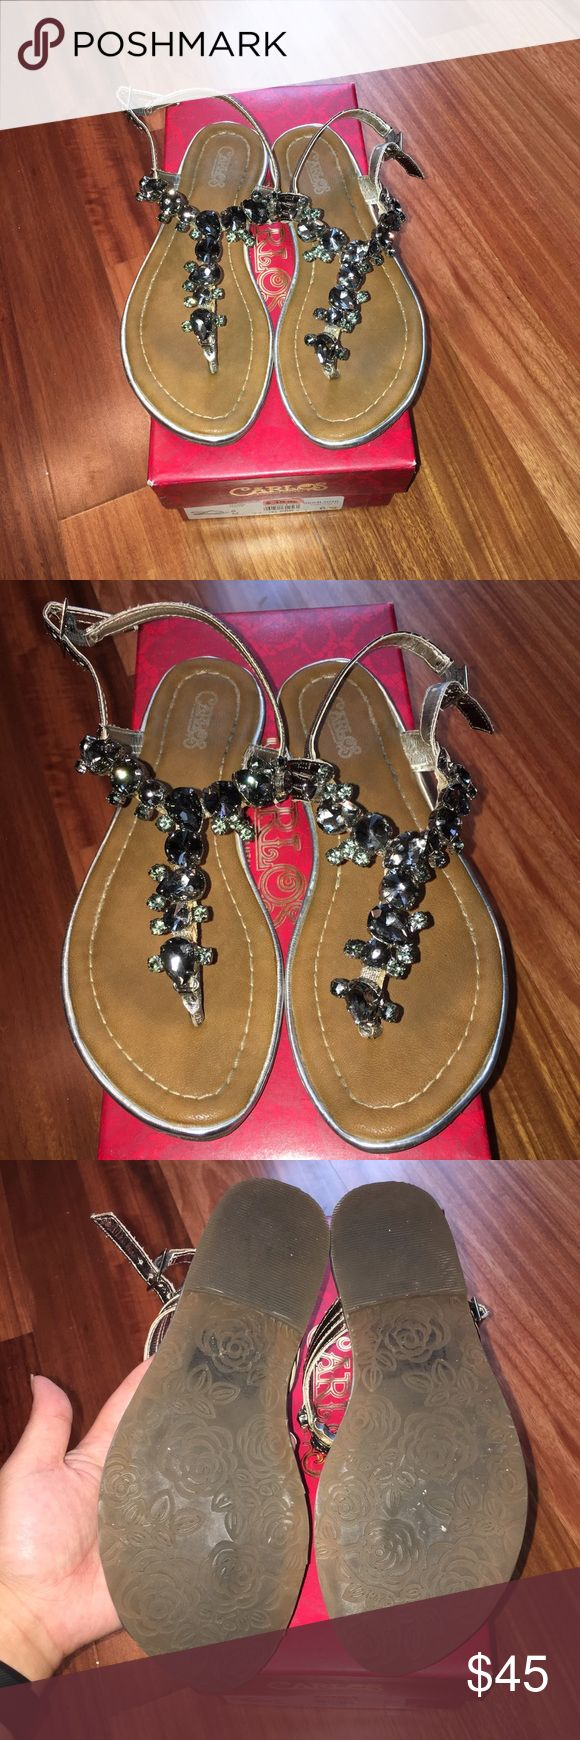 Carlos Santana Marquee Pewter Sandals Worn once then kept in box and never wore again. These sandals are absolutely beautiful but I need to clear out my closet. I wore them for a beach vacation and the stones sparkled under the sun. The stones are all attached and flawless. Perfect neutral color to wear with anything. If I don't sell then I'll keep it. 😂 adjustable strap. Comes with original box! Carlos Santana Shoes Sandals